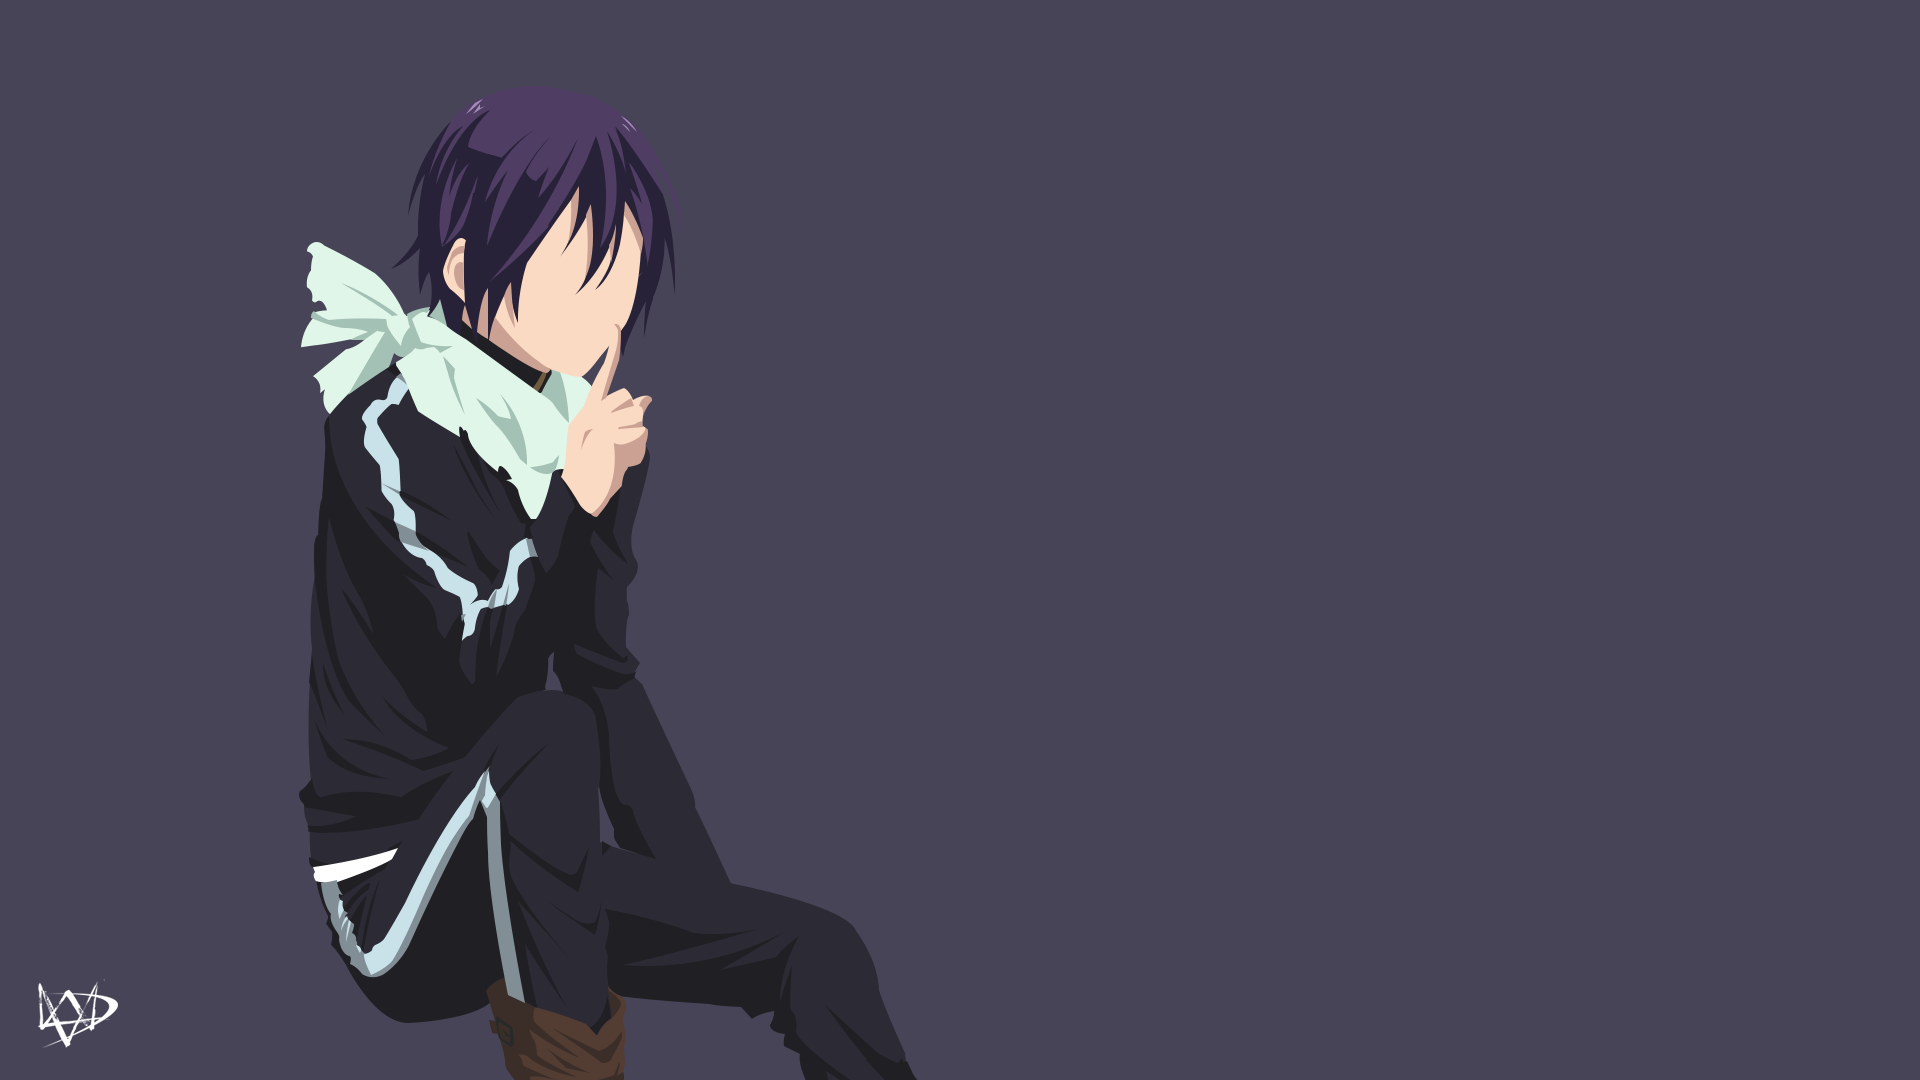 Saitama One Punchman Wallpaper Minimalist Anime By Lucifer012 On Noragami Wallpapers Para Pc Anime